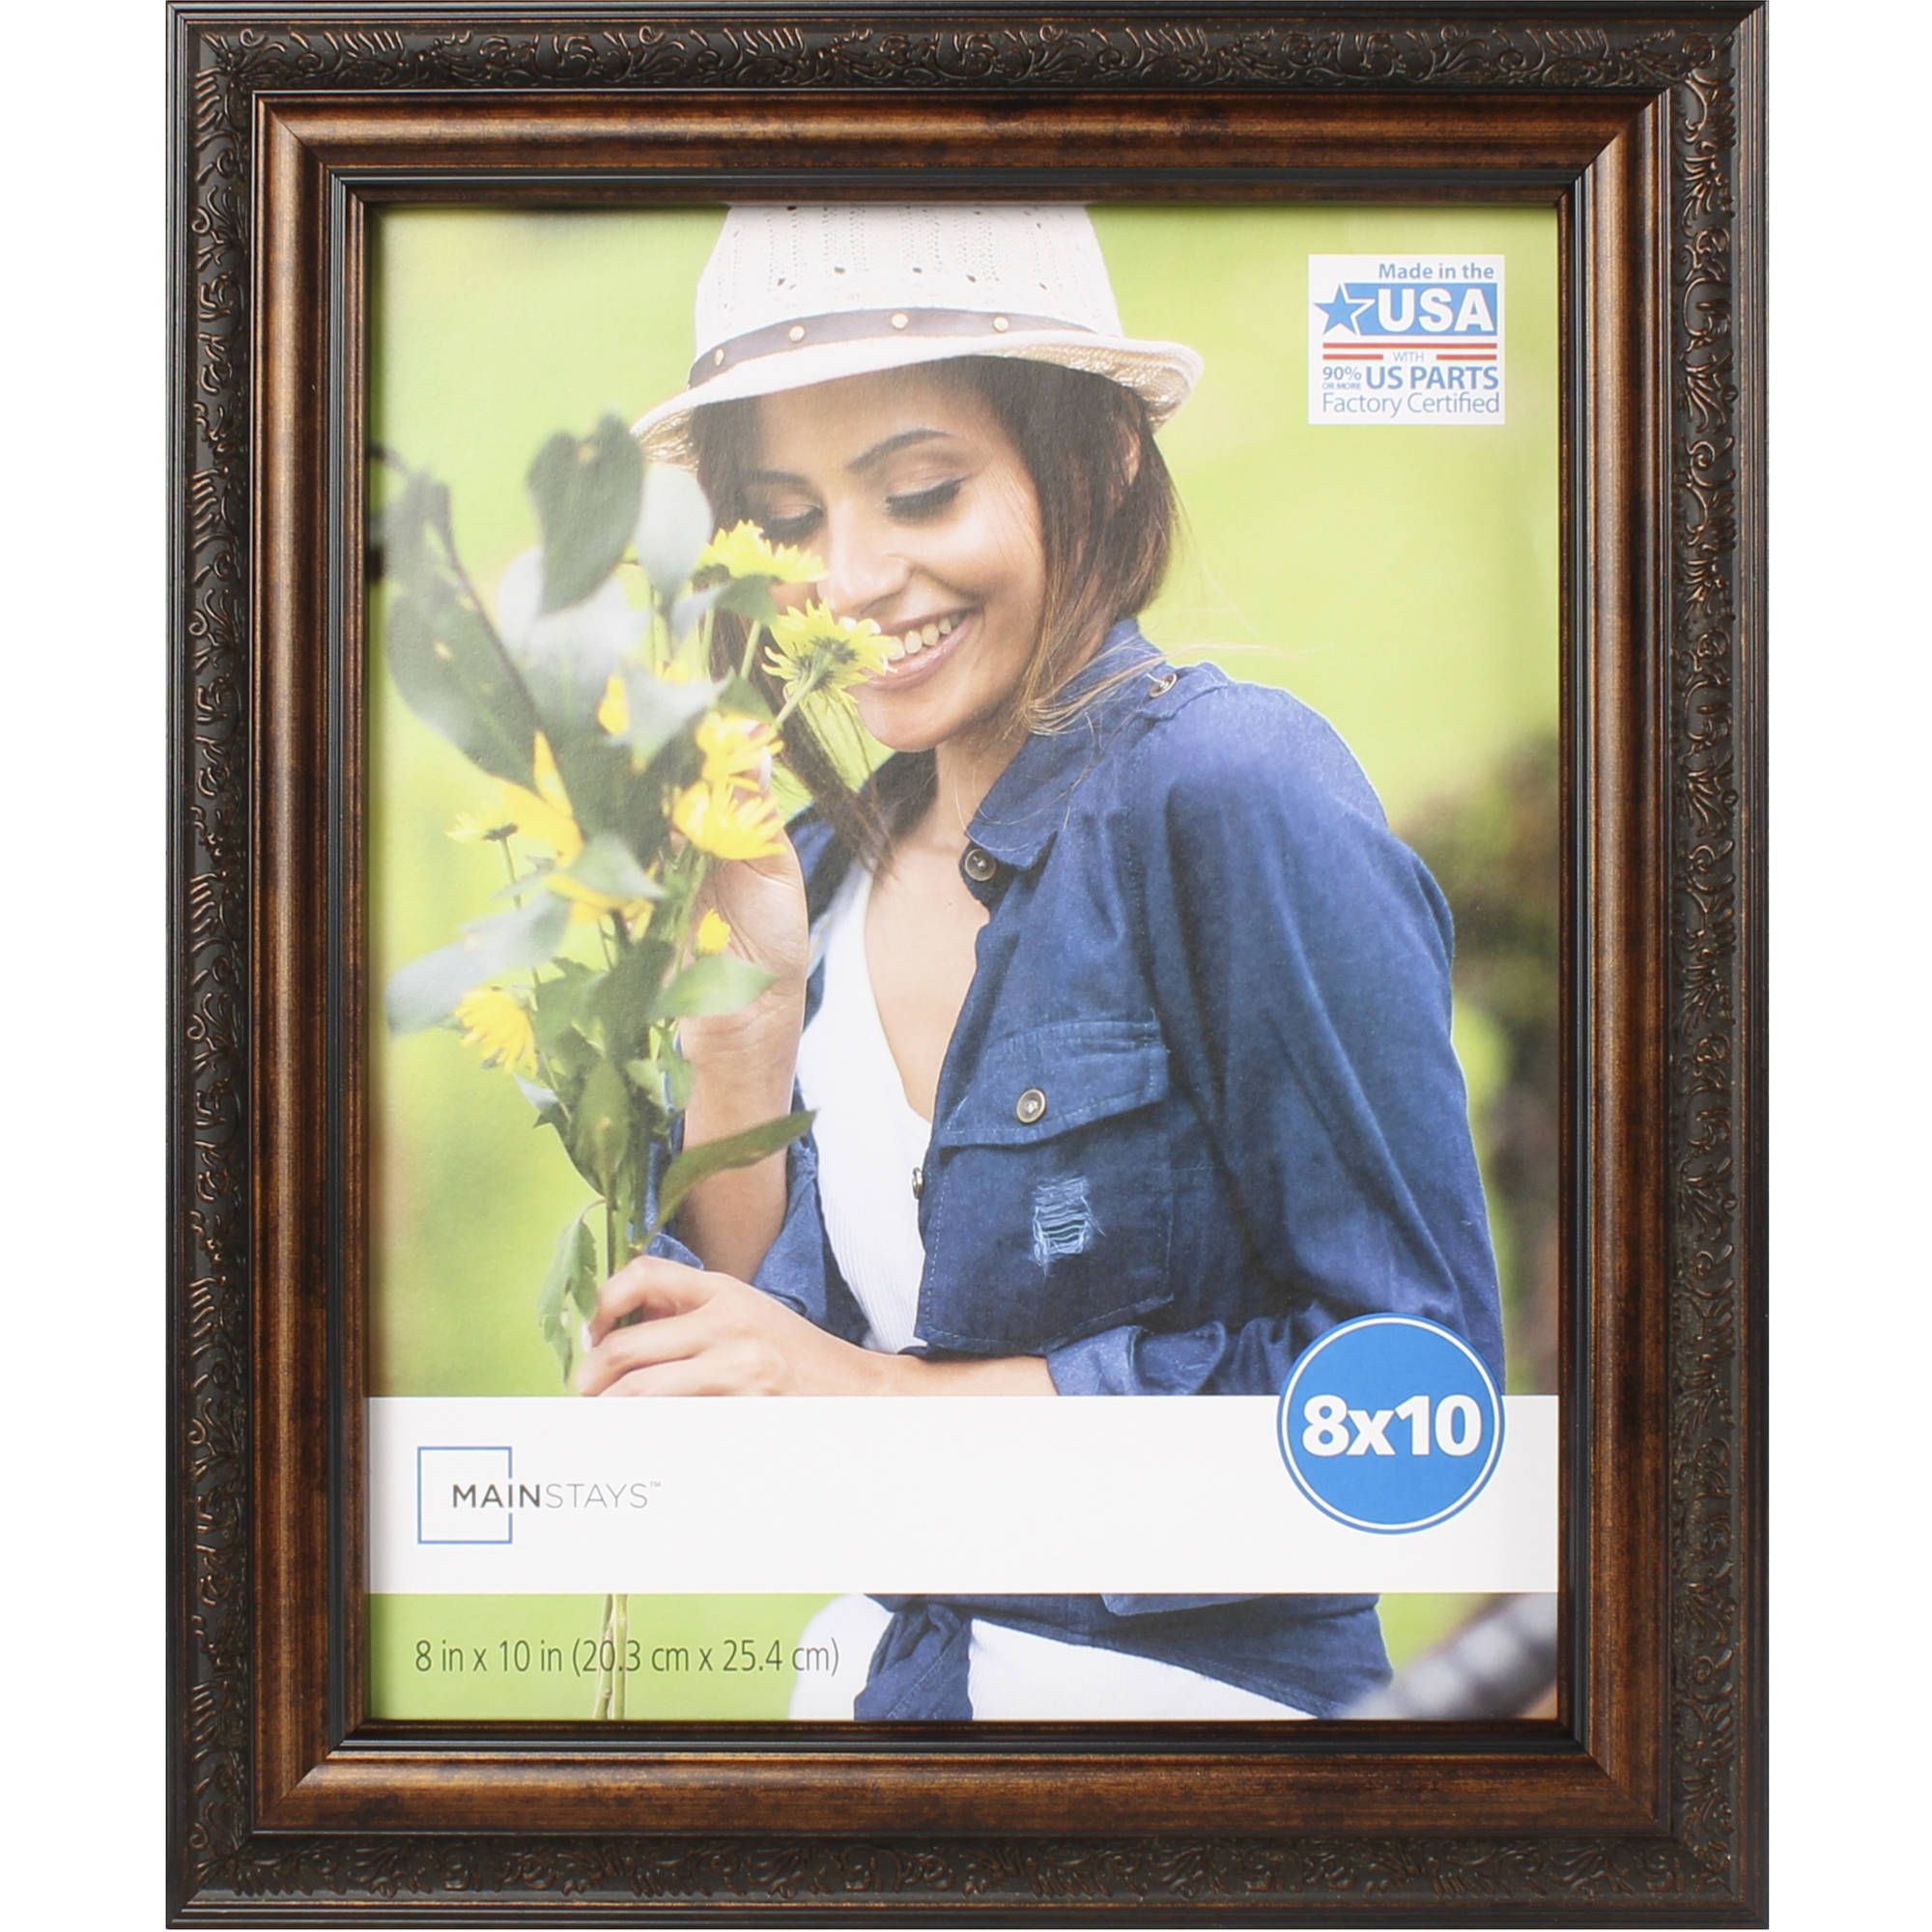 Find great deals on eBay for mainstays picture frames. Shop with confidence.